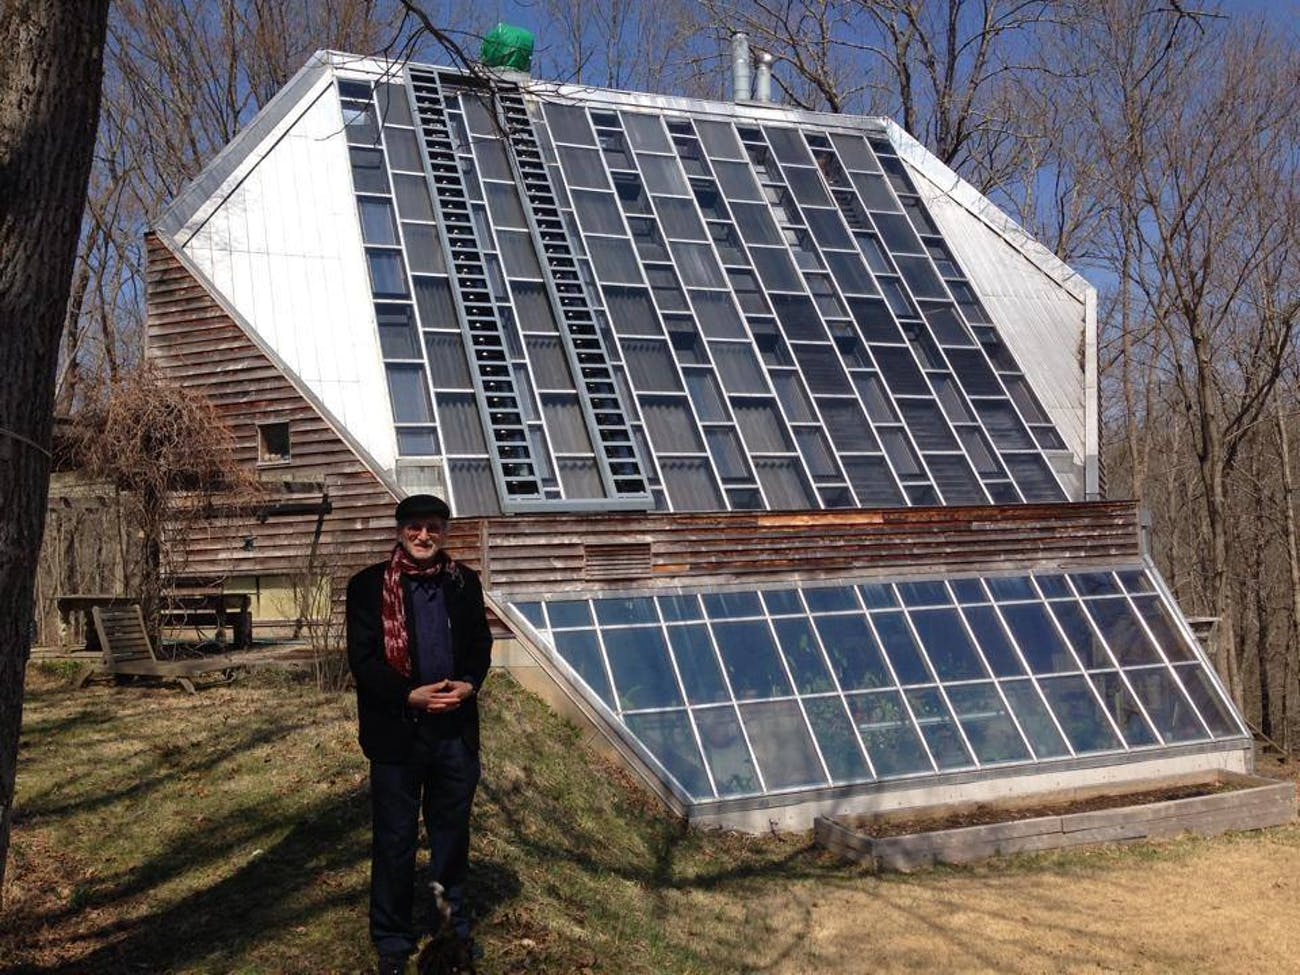 The Raven Run solar house in Kentucky from the 1970s